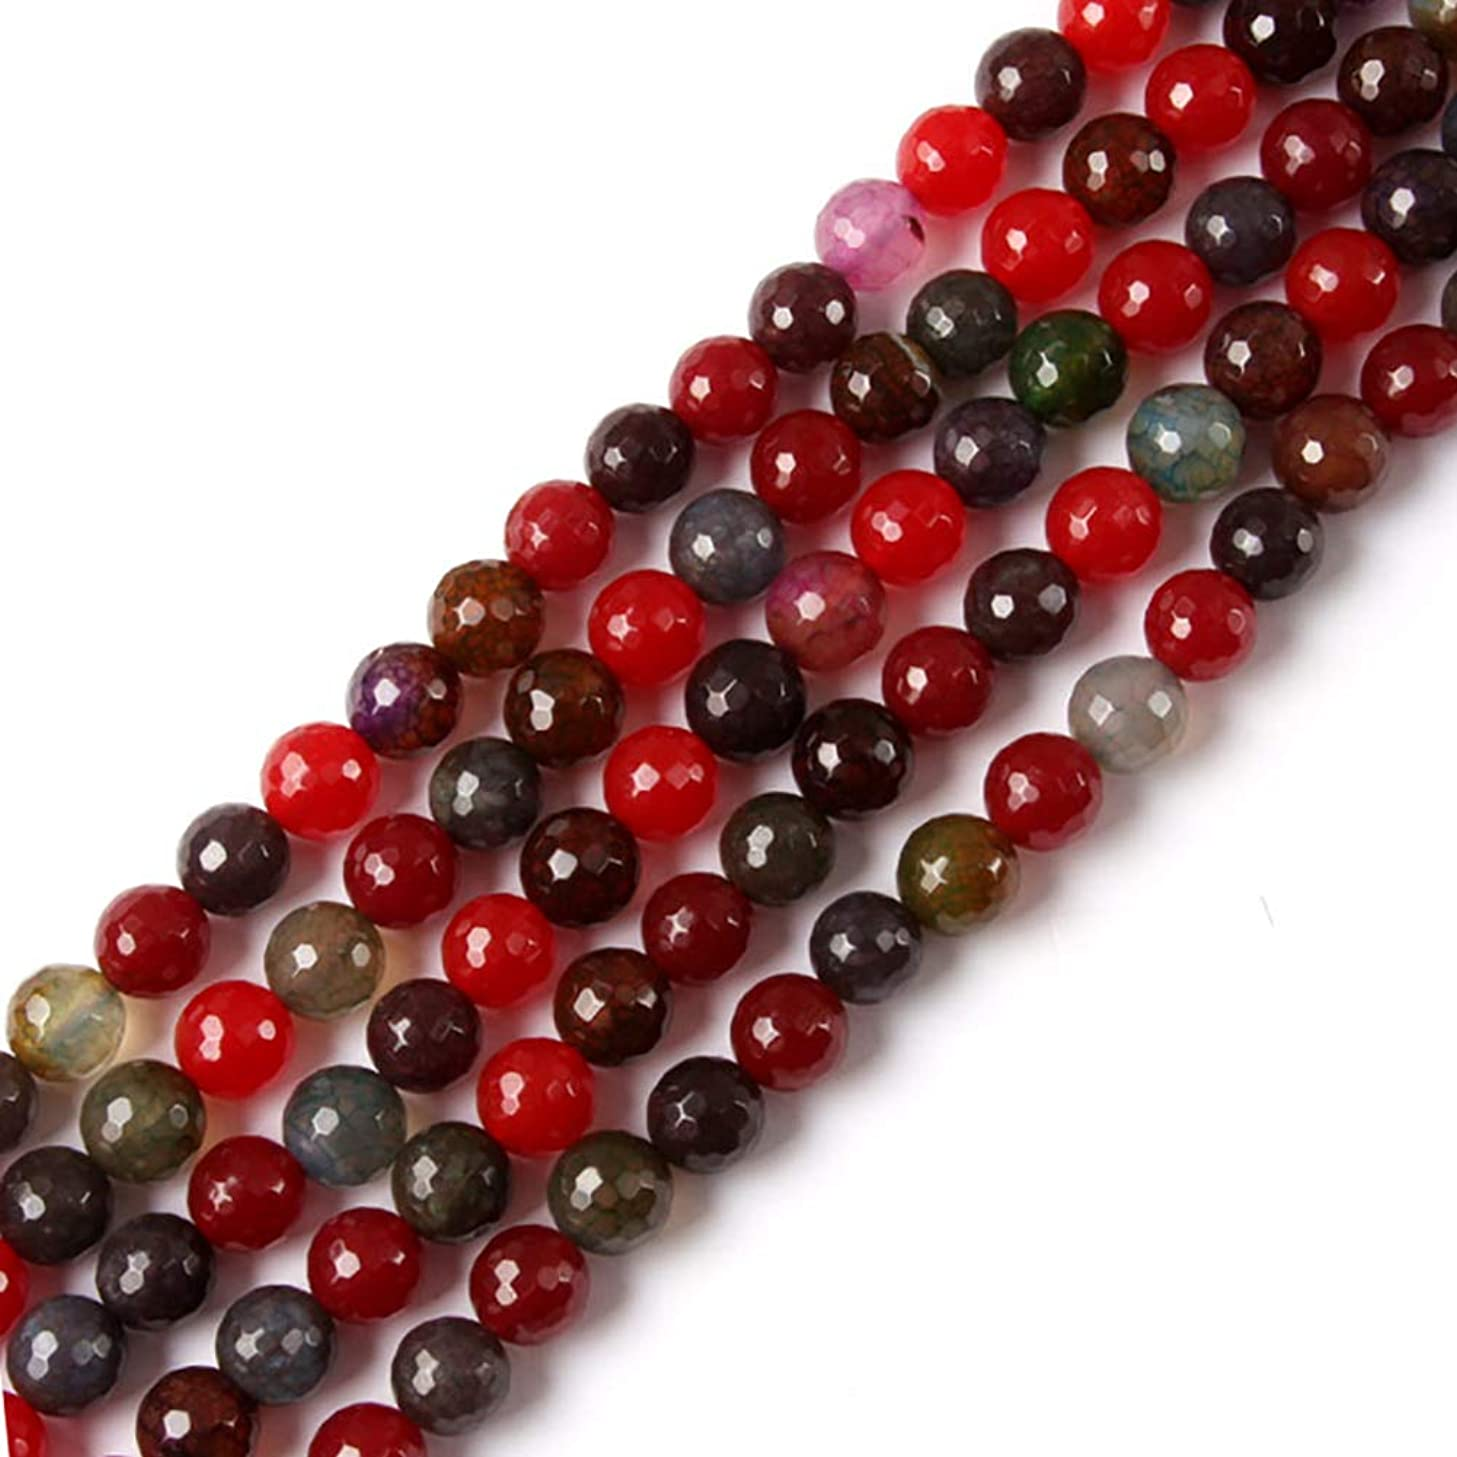 GEM-inside Natural 10mm Faceted Mixed Colour Agate Beads Gemstone Loose Beads Handmade Round Beads for Jewelry Making Jewelry Beading Supplies for Women